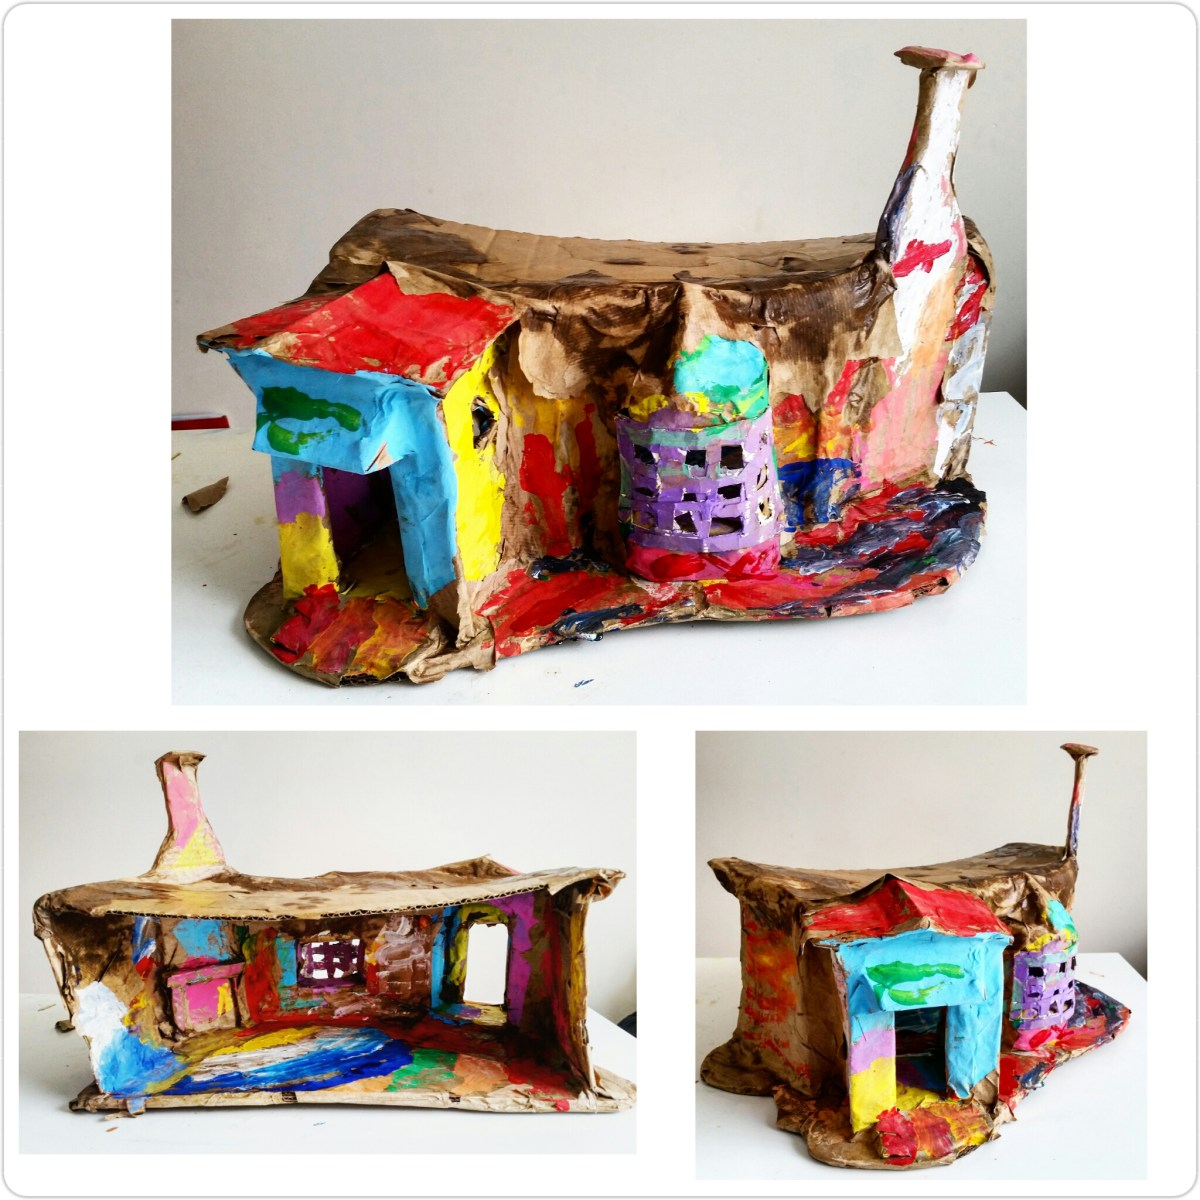 Sylvanian Families: Make Your Own Mole House (Art and Craft Activity)